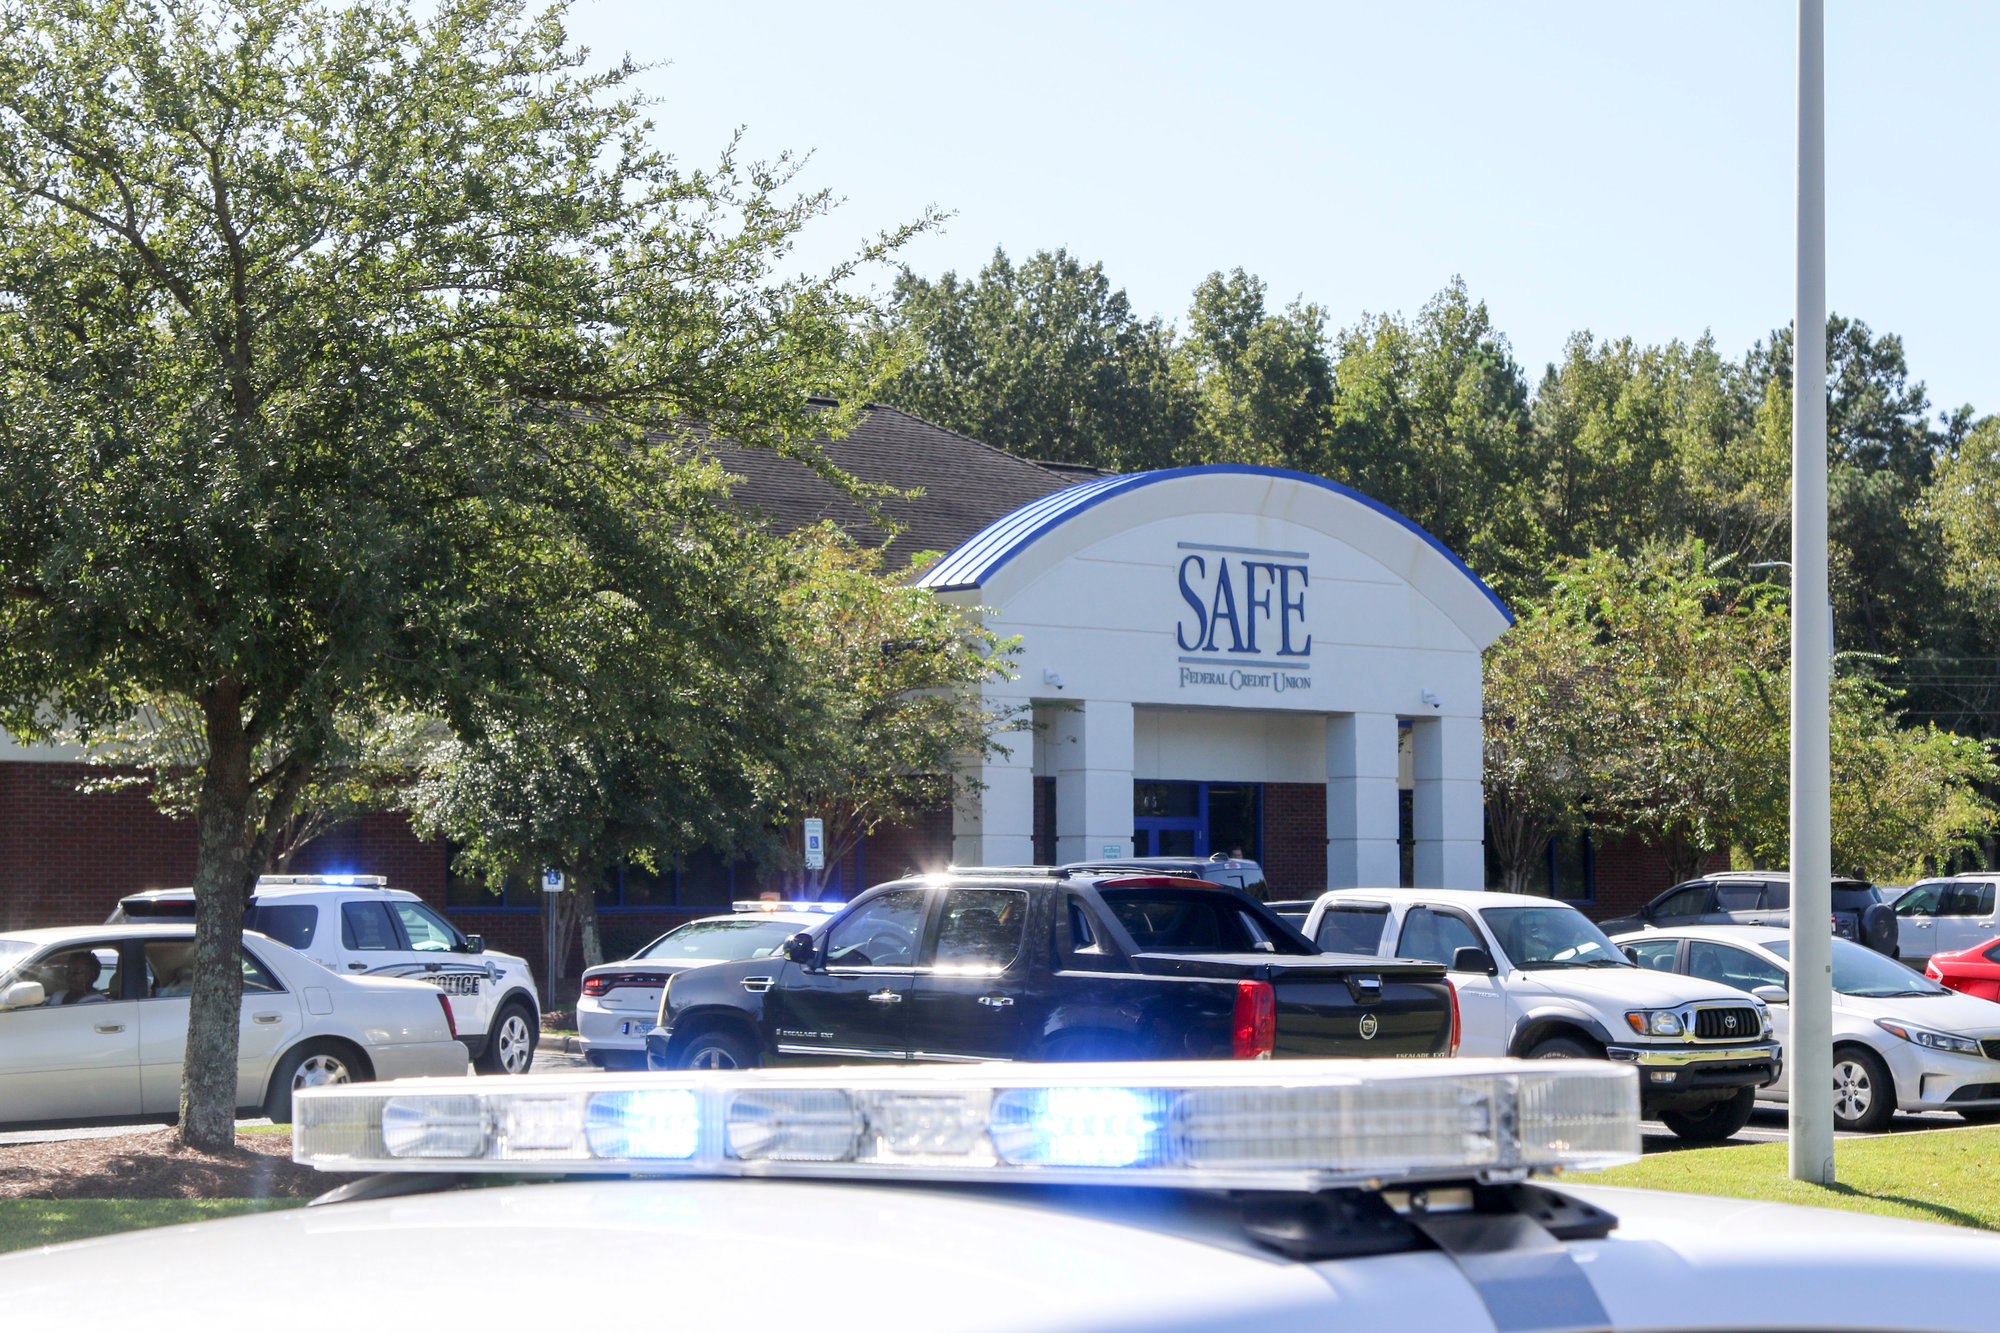 Police were on scene Friday morning as SAFE Federal Credit Union remained on lockdown after a robbery.